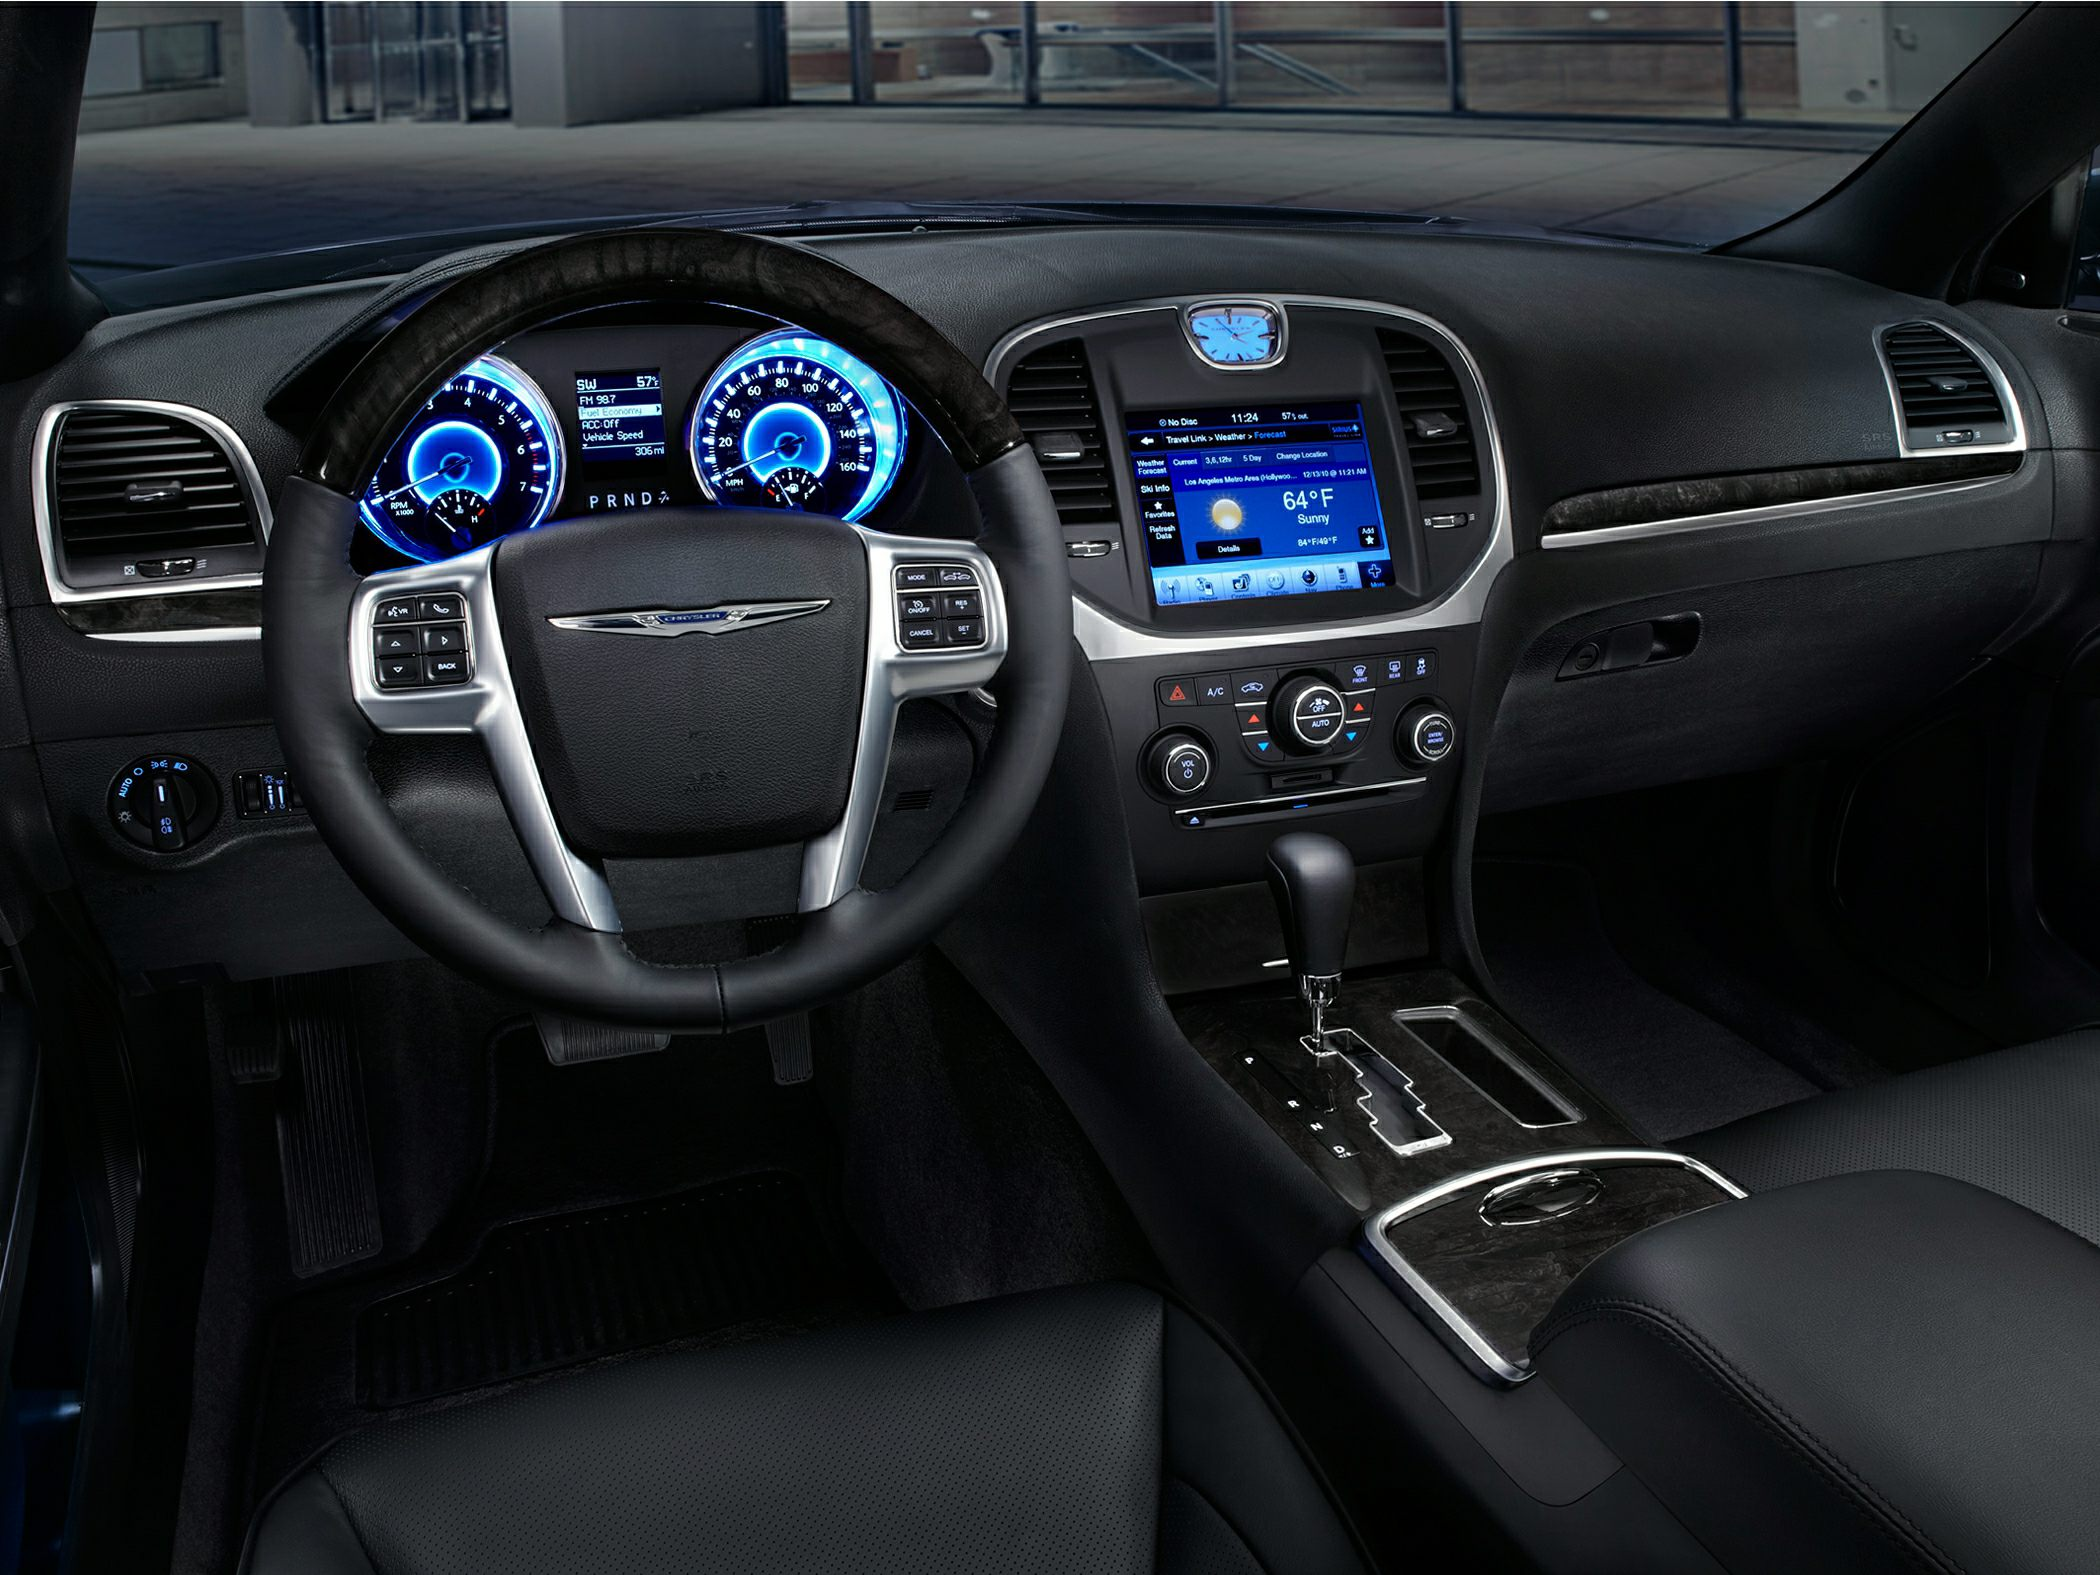 2014 chrysler 300c interior front